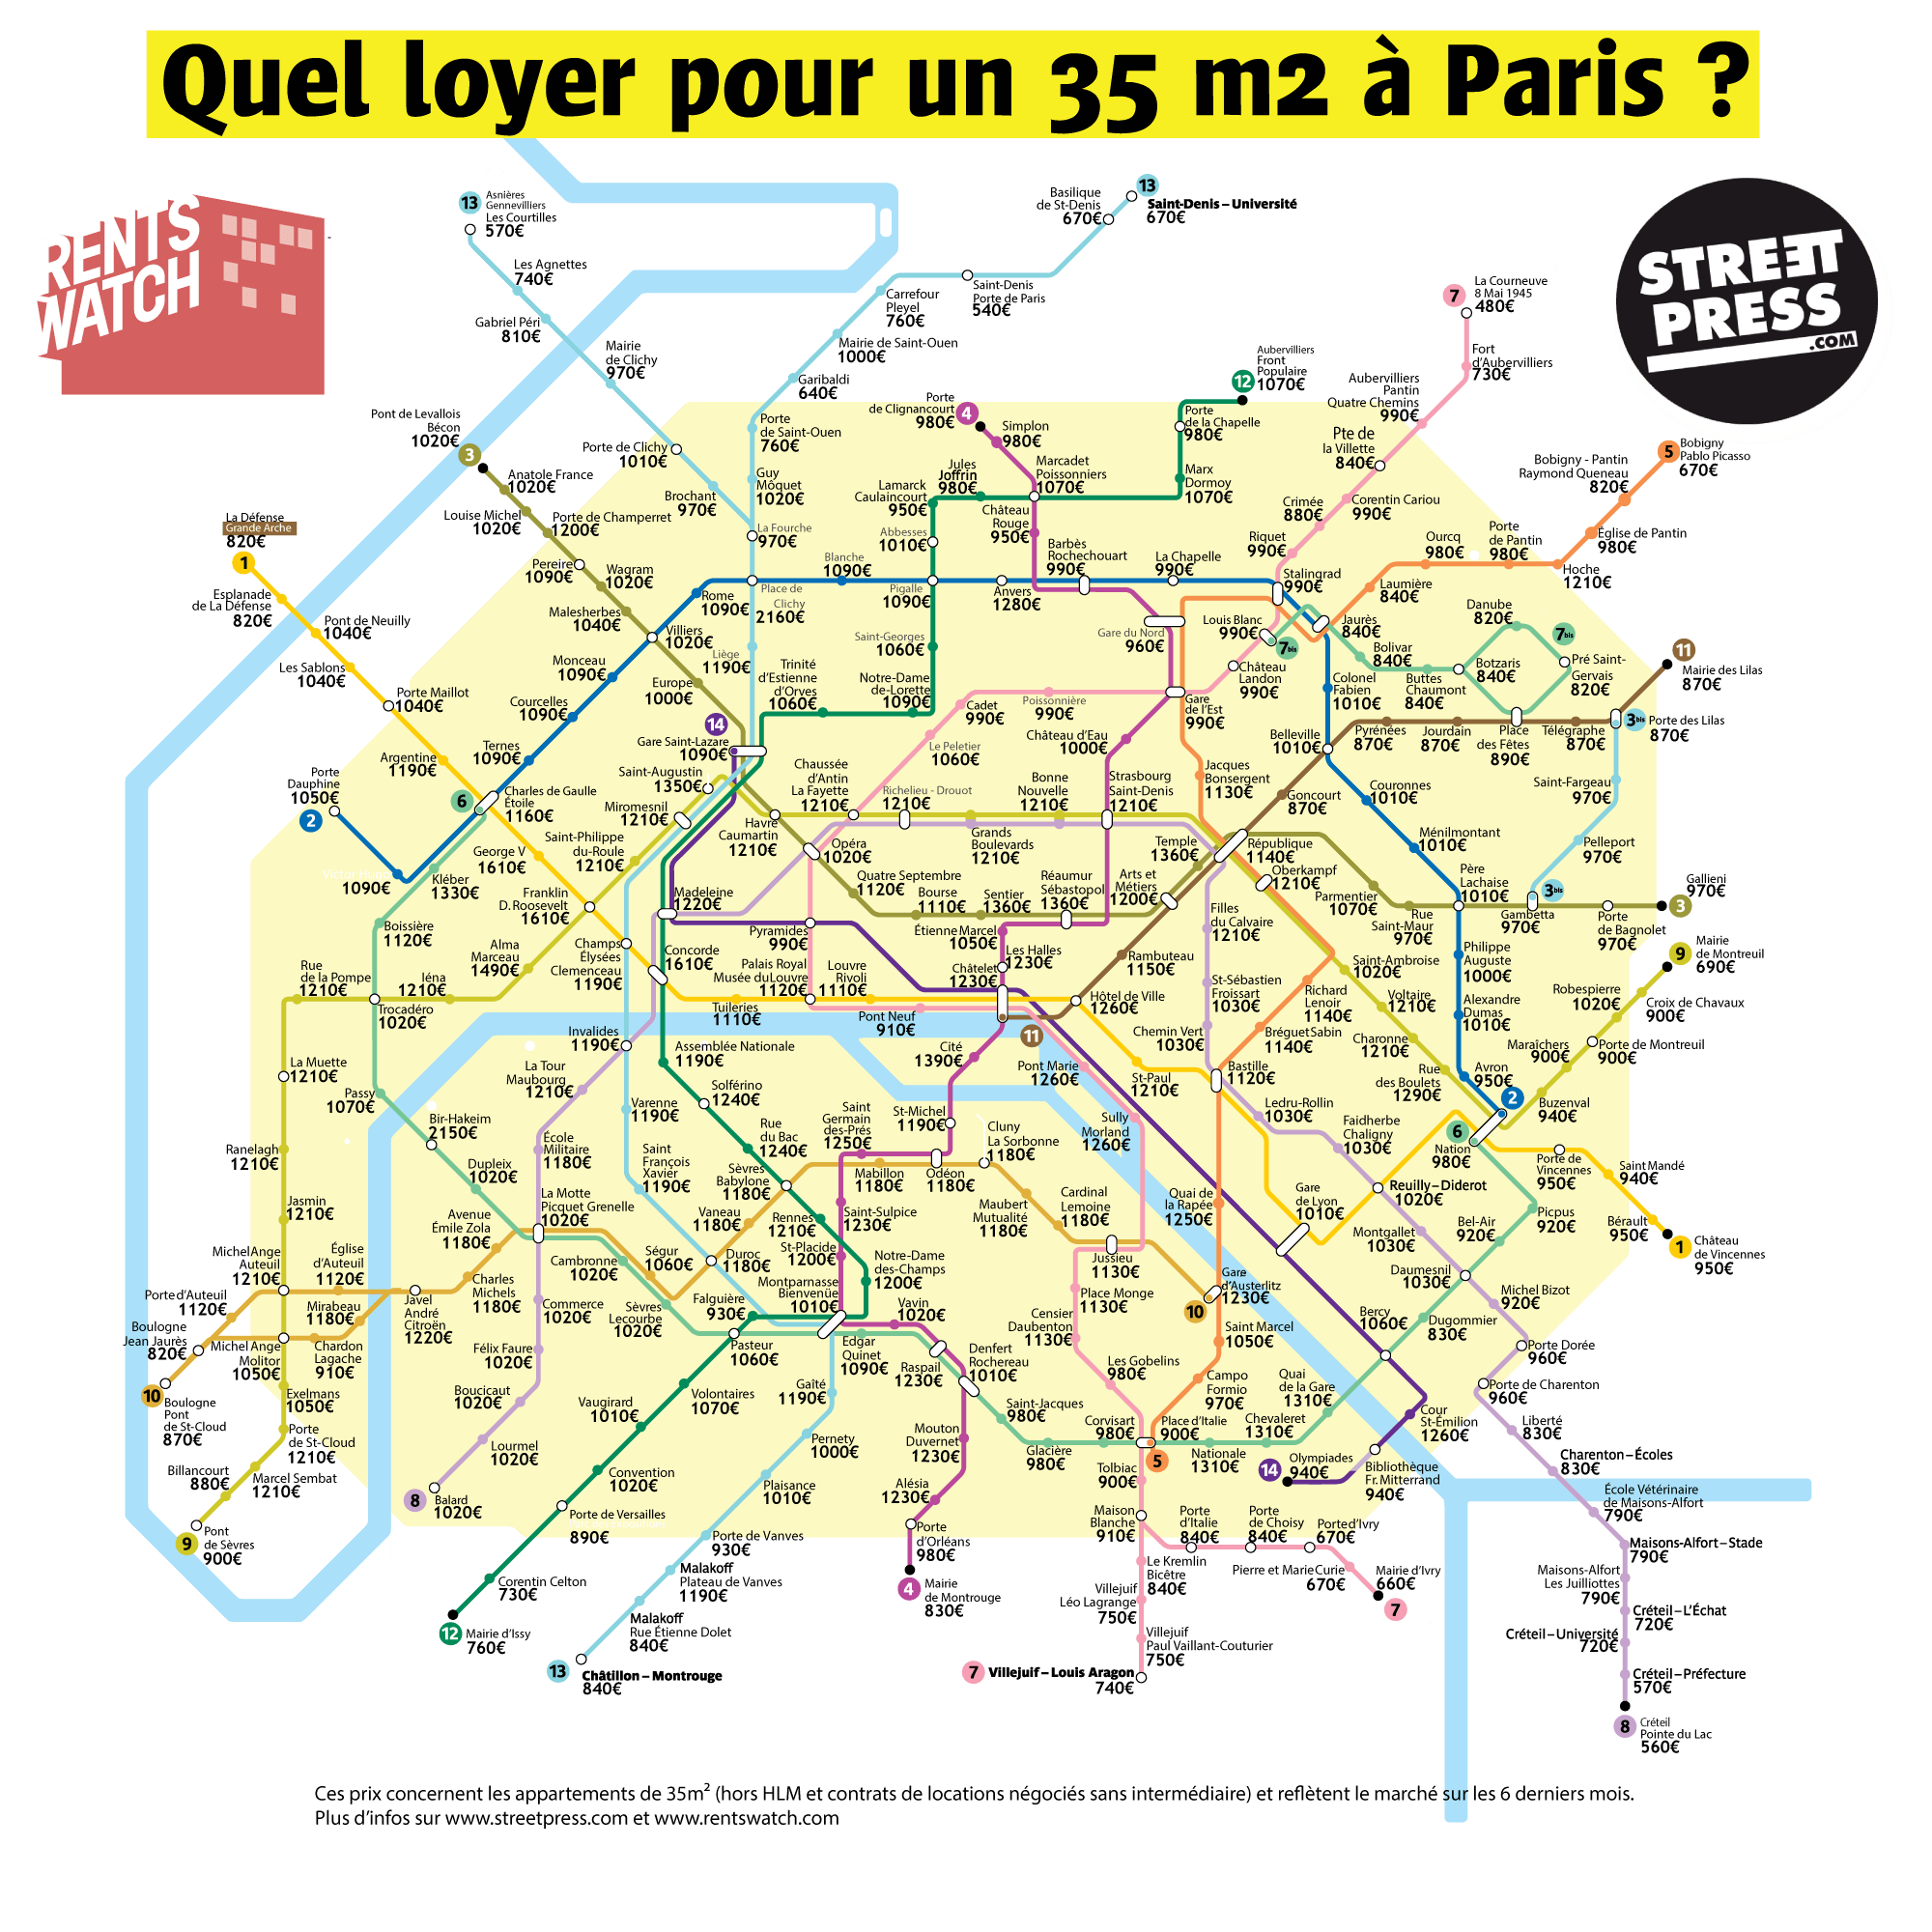 La-Carte-des-Loyers-a-Paris-par-StreetPress